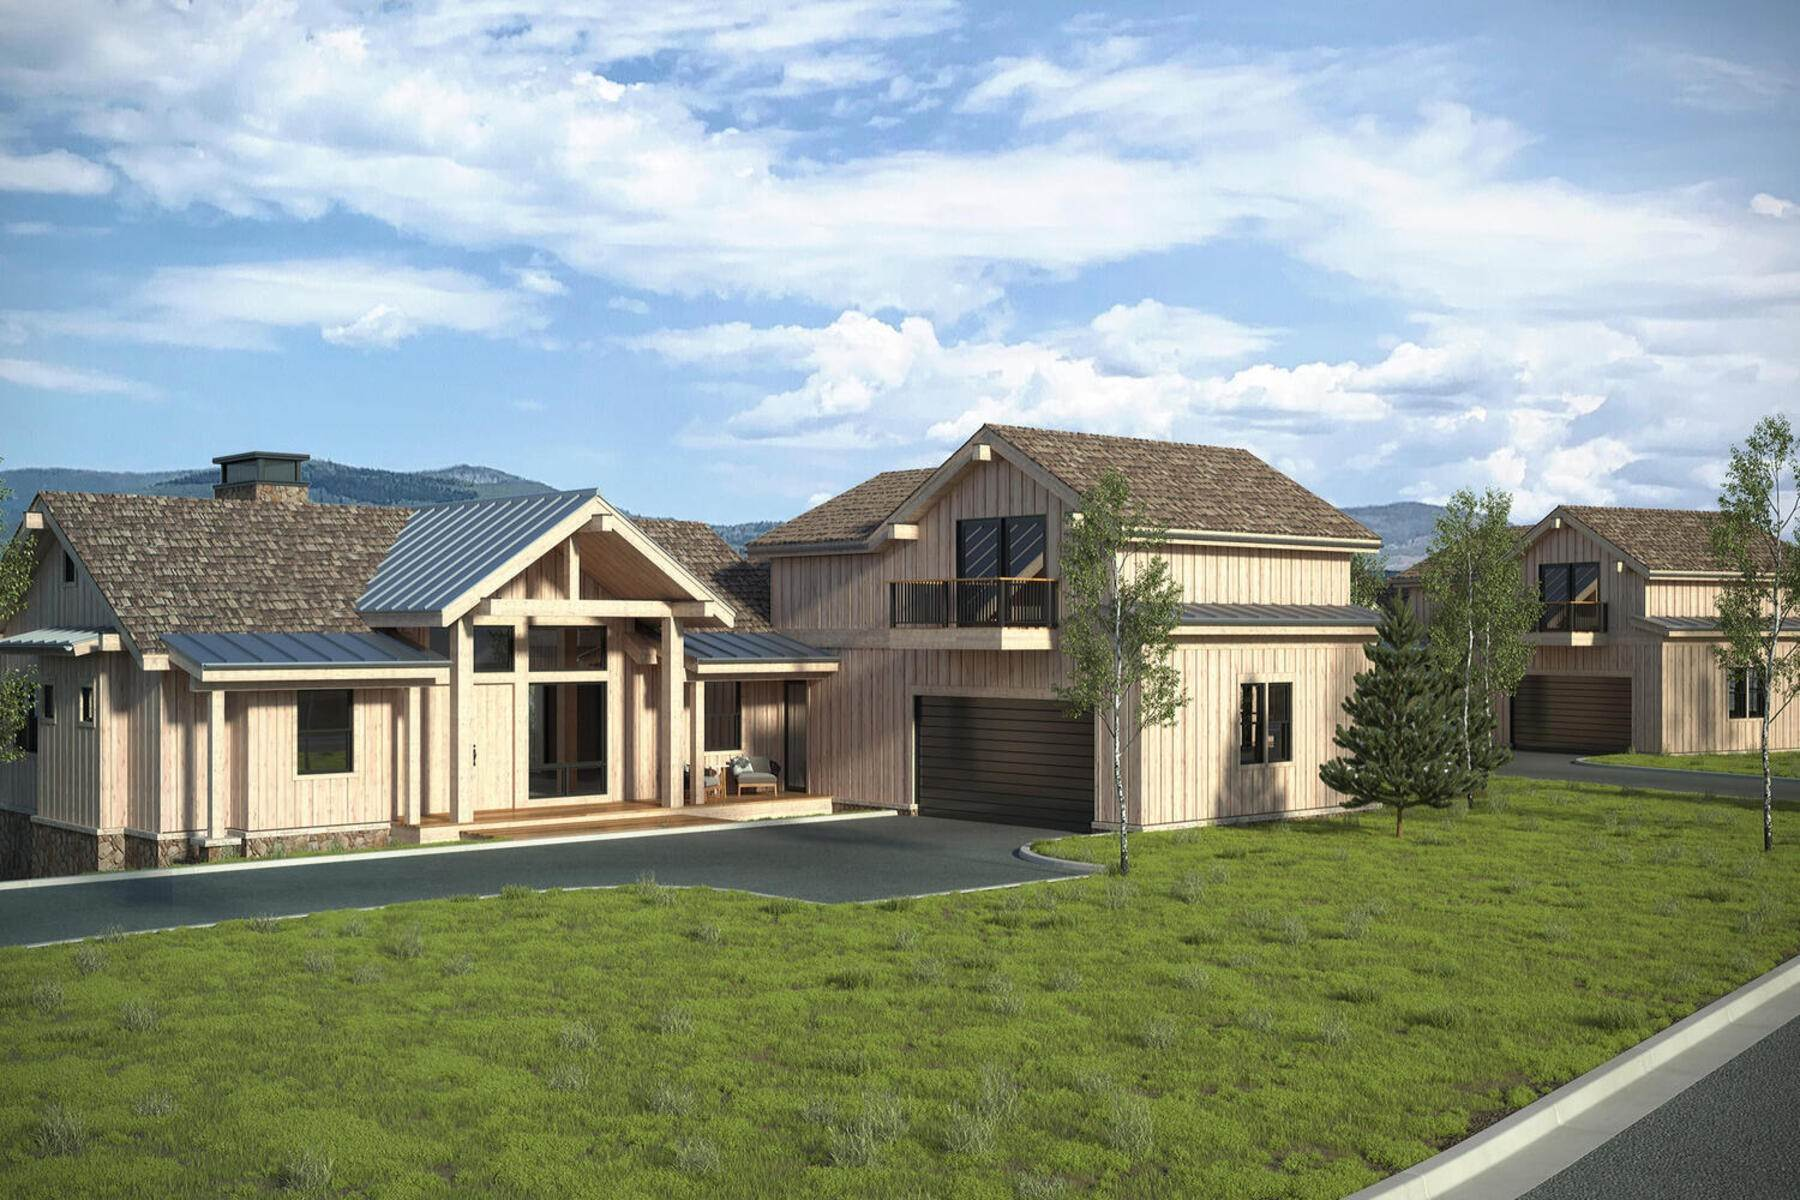 fractional ownership prop for Sale at 1/8 Fractional Ownership Opportunity In Brand New Kingfisher Cabin 7559 E Stardust Ct #318F, 5.6 Heber City, Utah 84032 United States